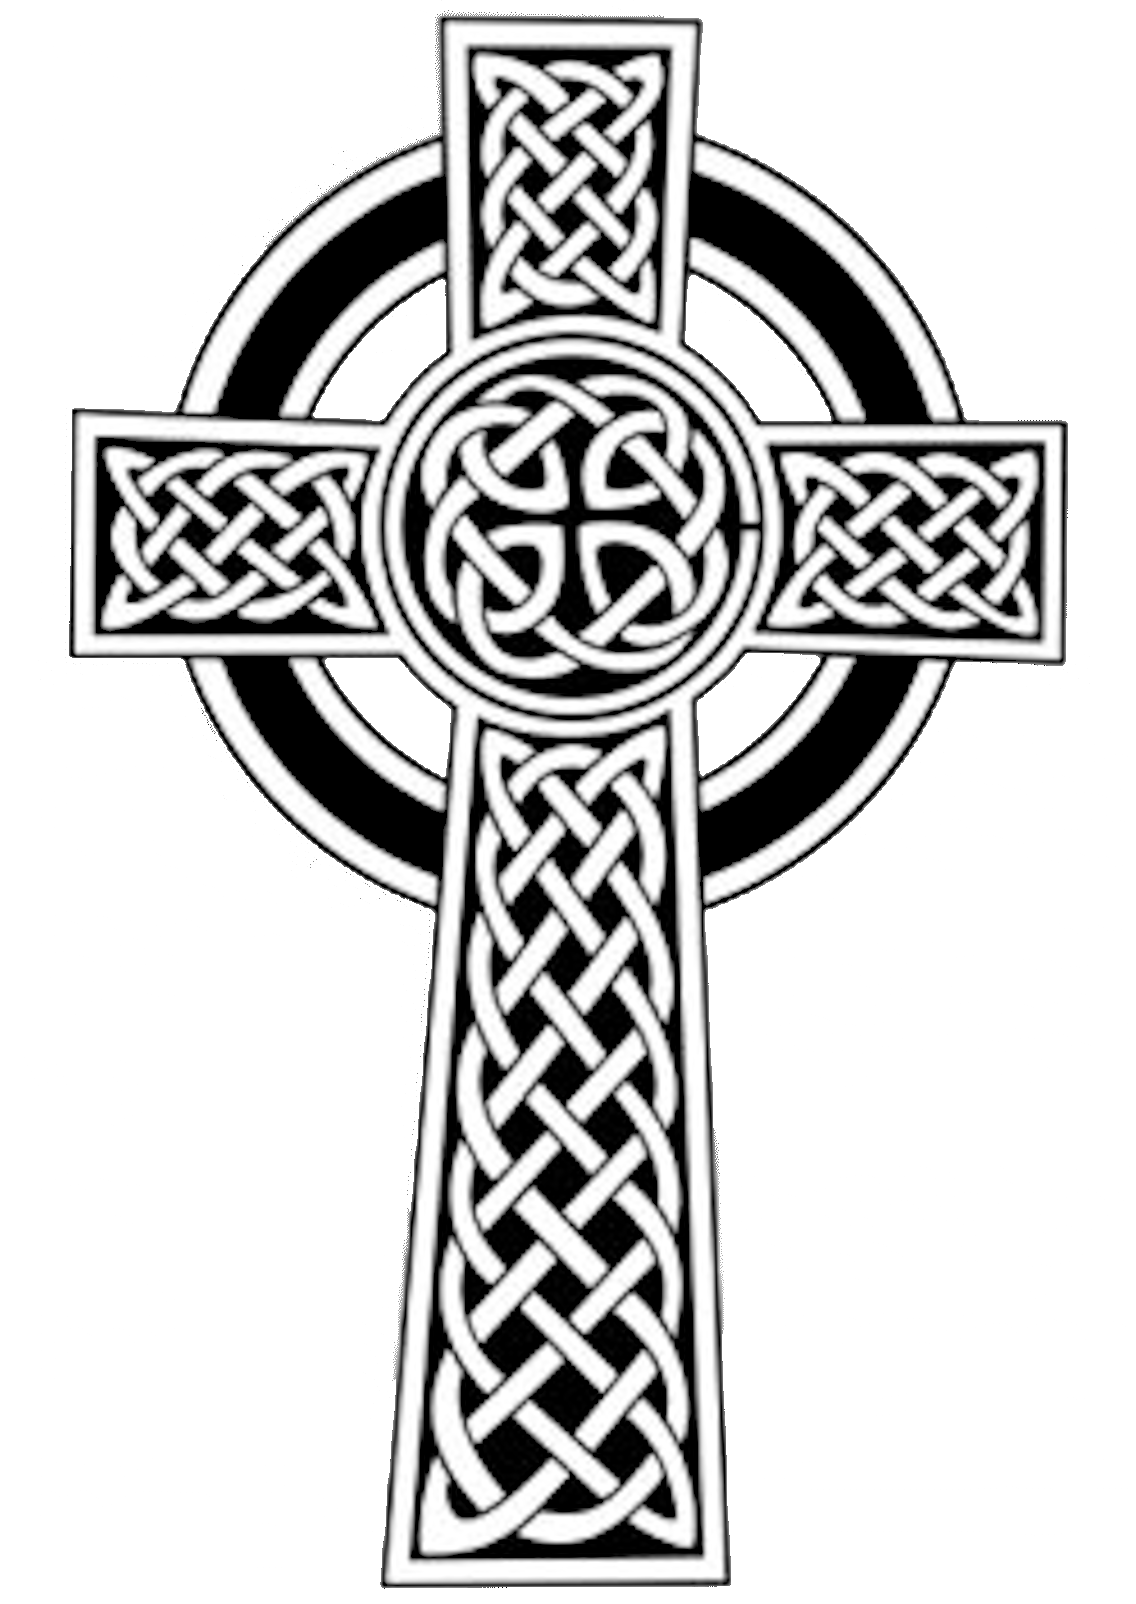 image transparent stock Free clip art image. Celtic cross clipart black and white